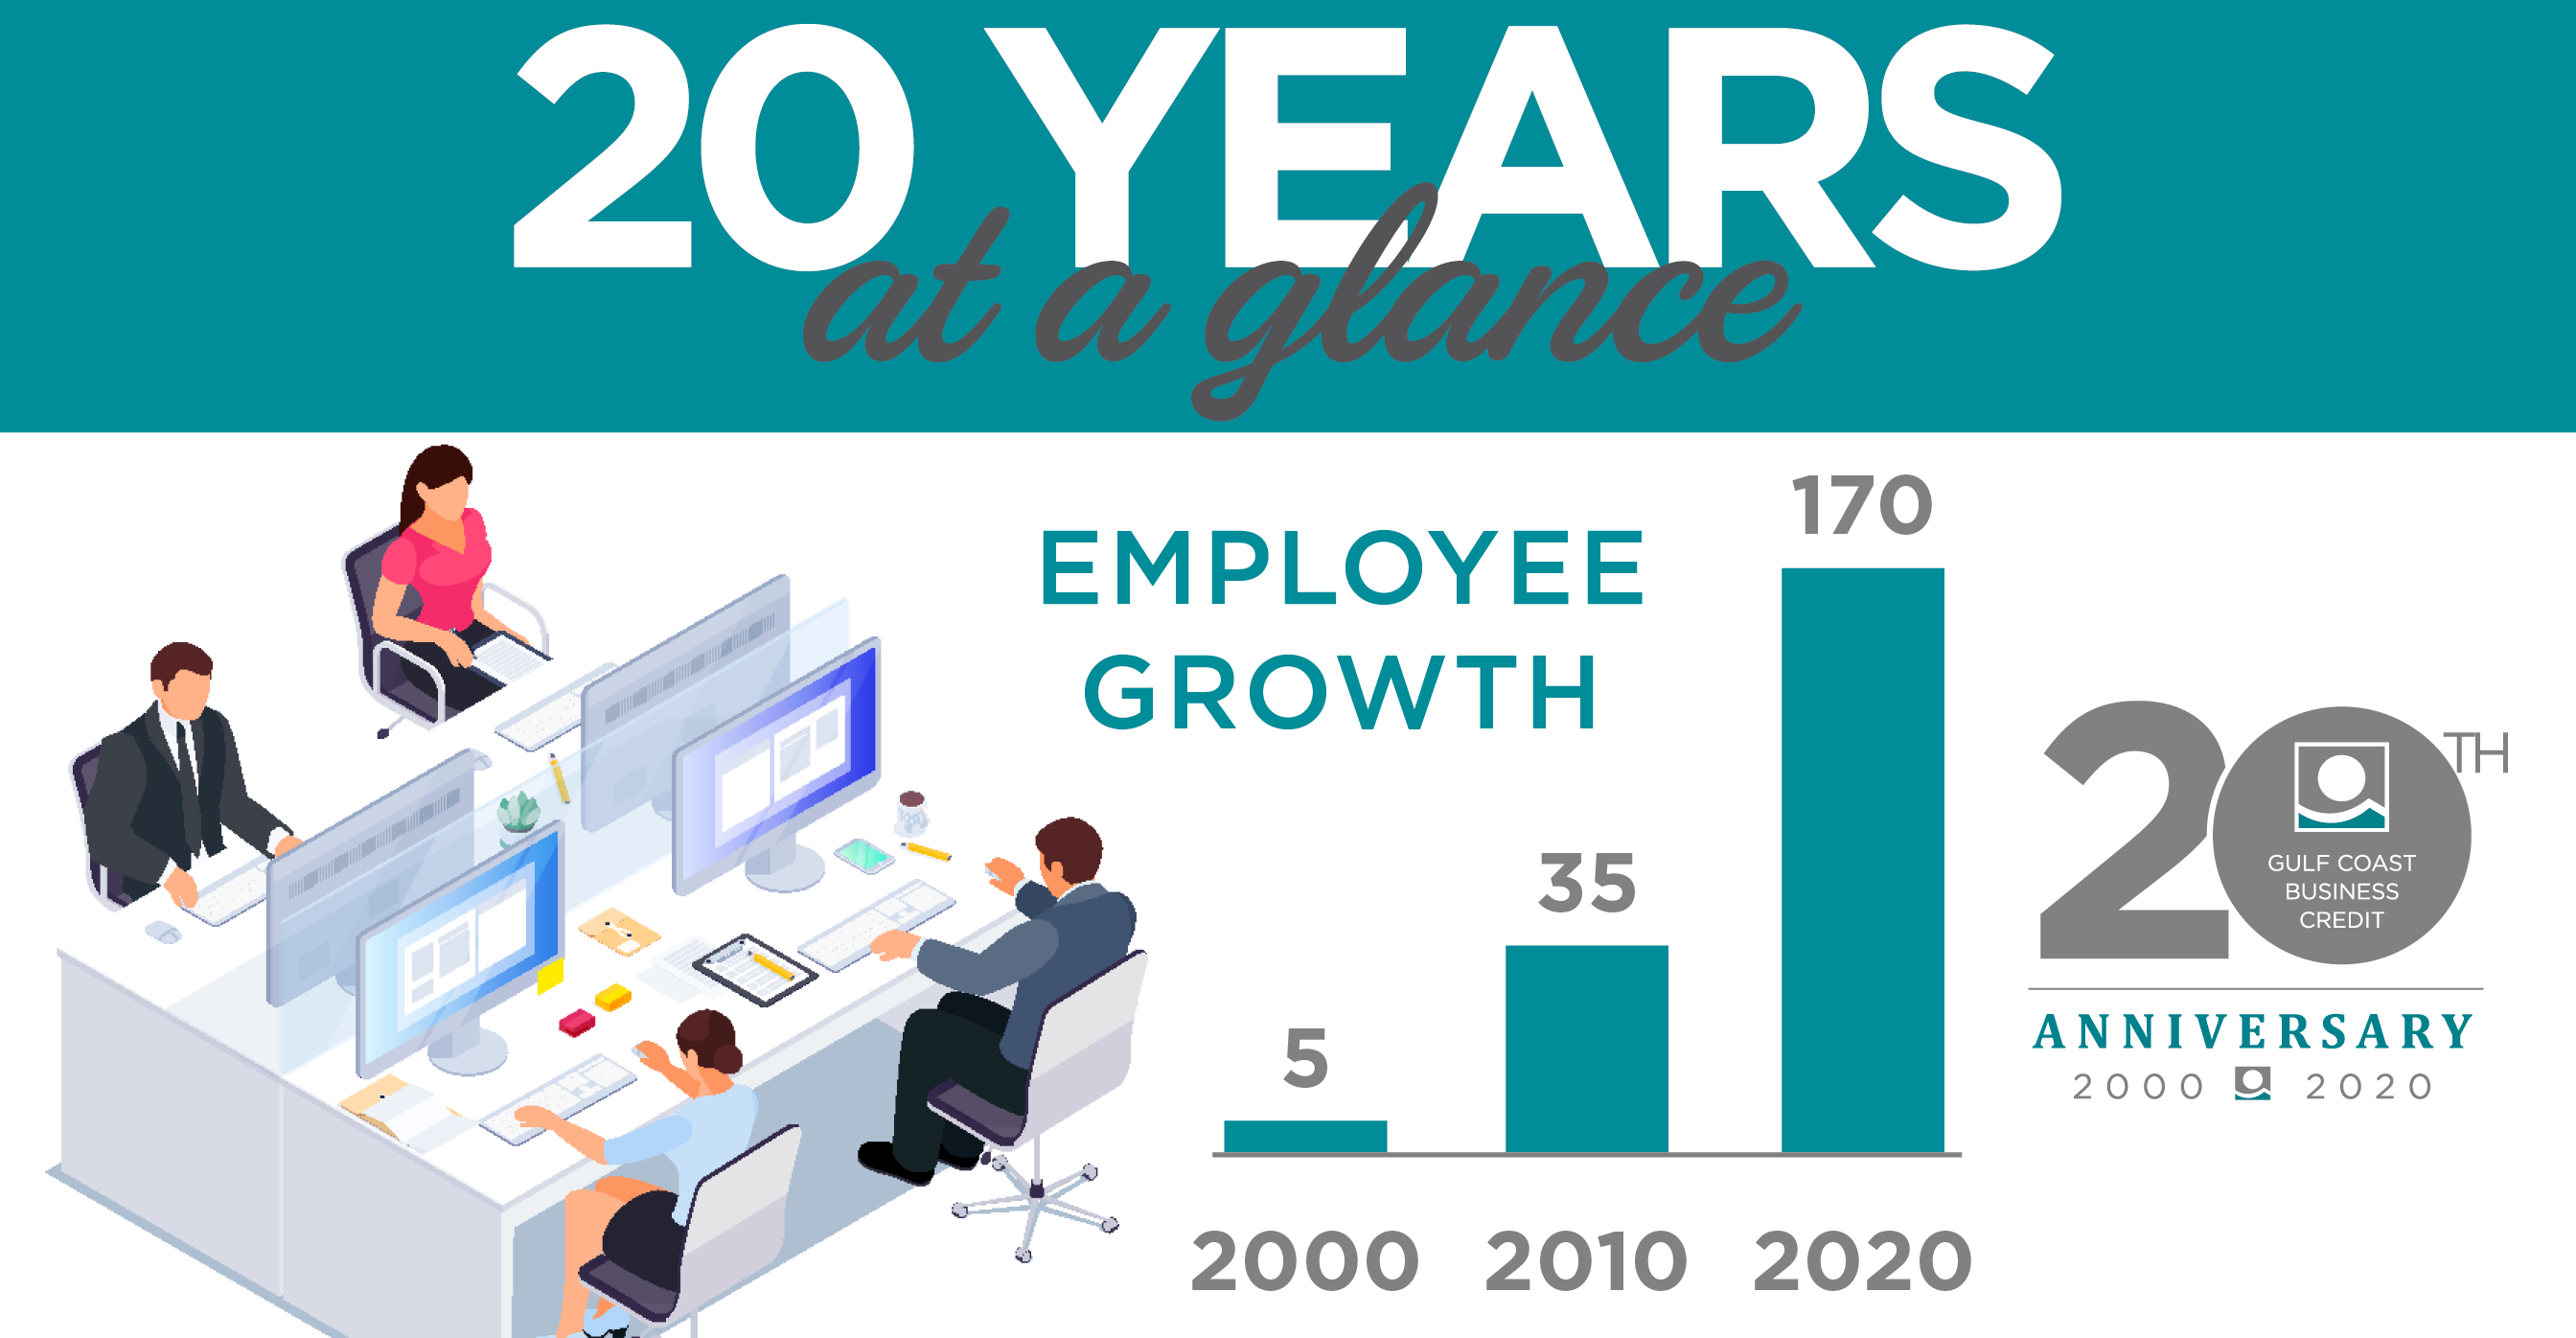 GCBC 20th Anniversary - Employee Growth